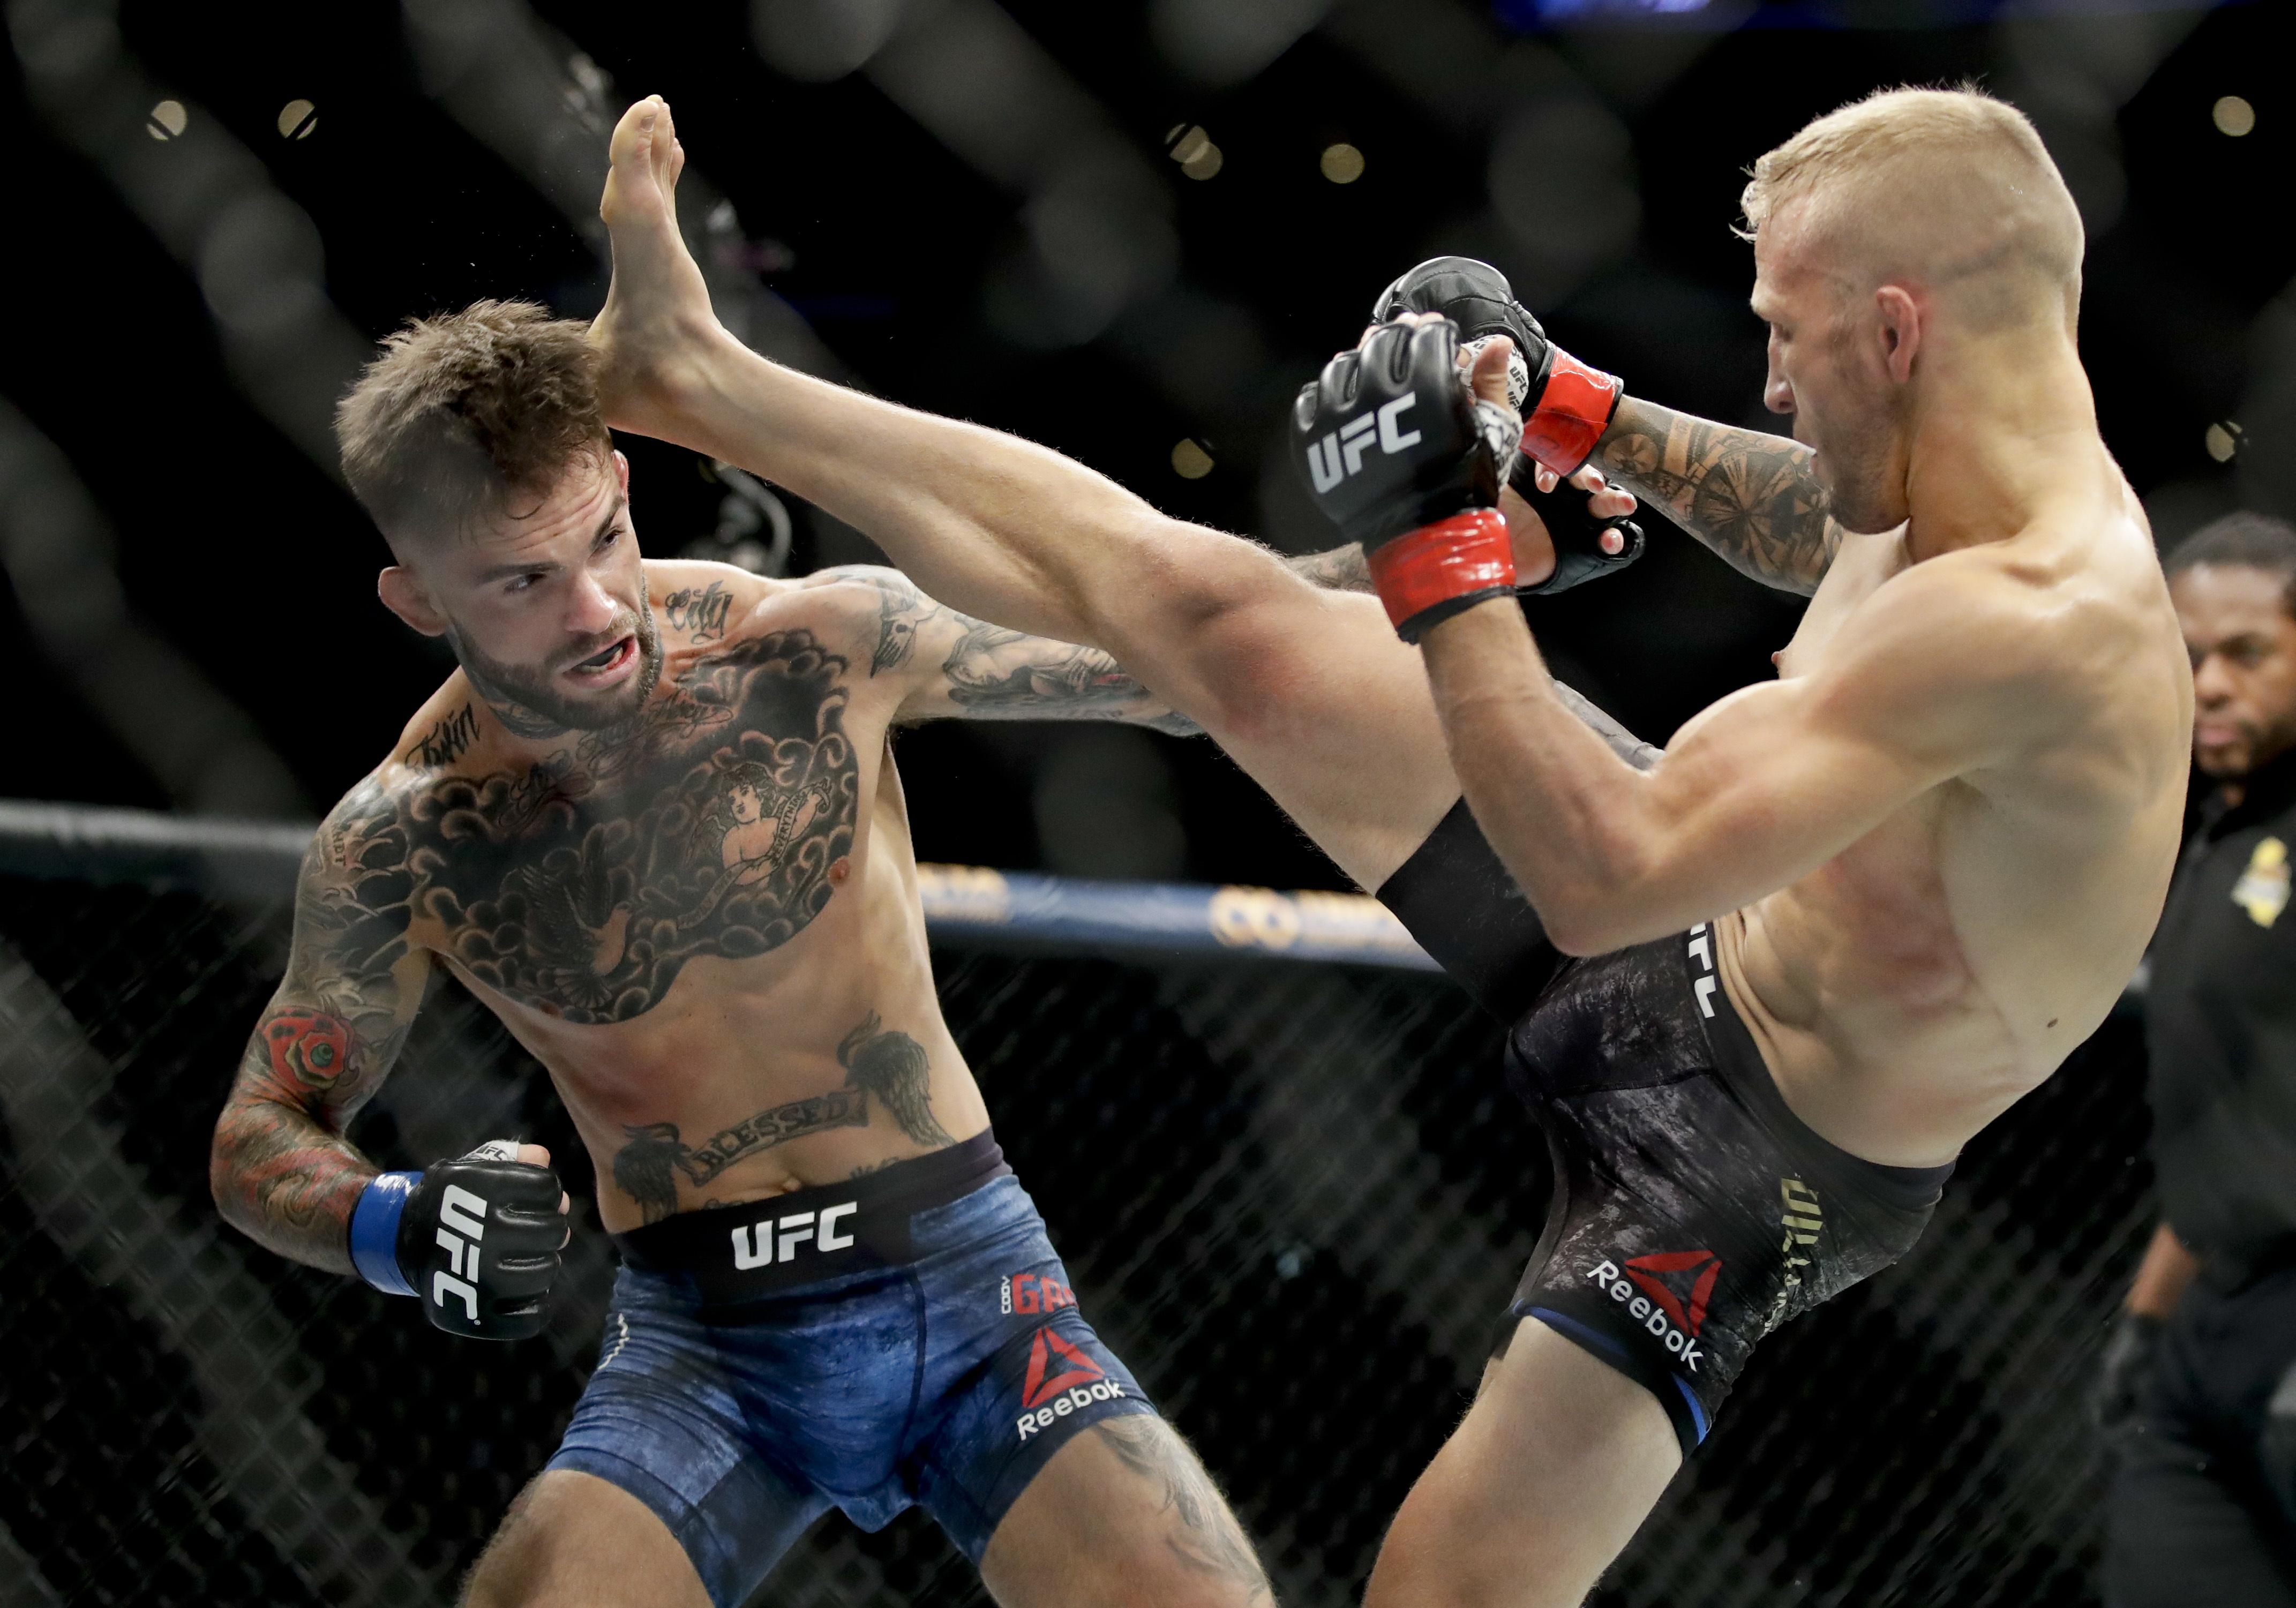 Dillashaw beat arch rival Garbrandt twice - both by knockout as he reigns champion at 145lbs